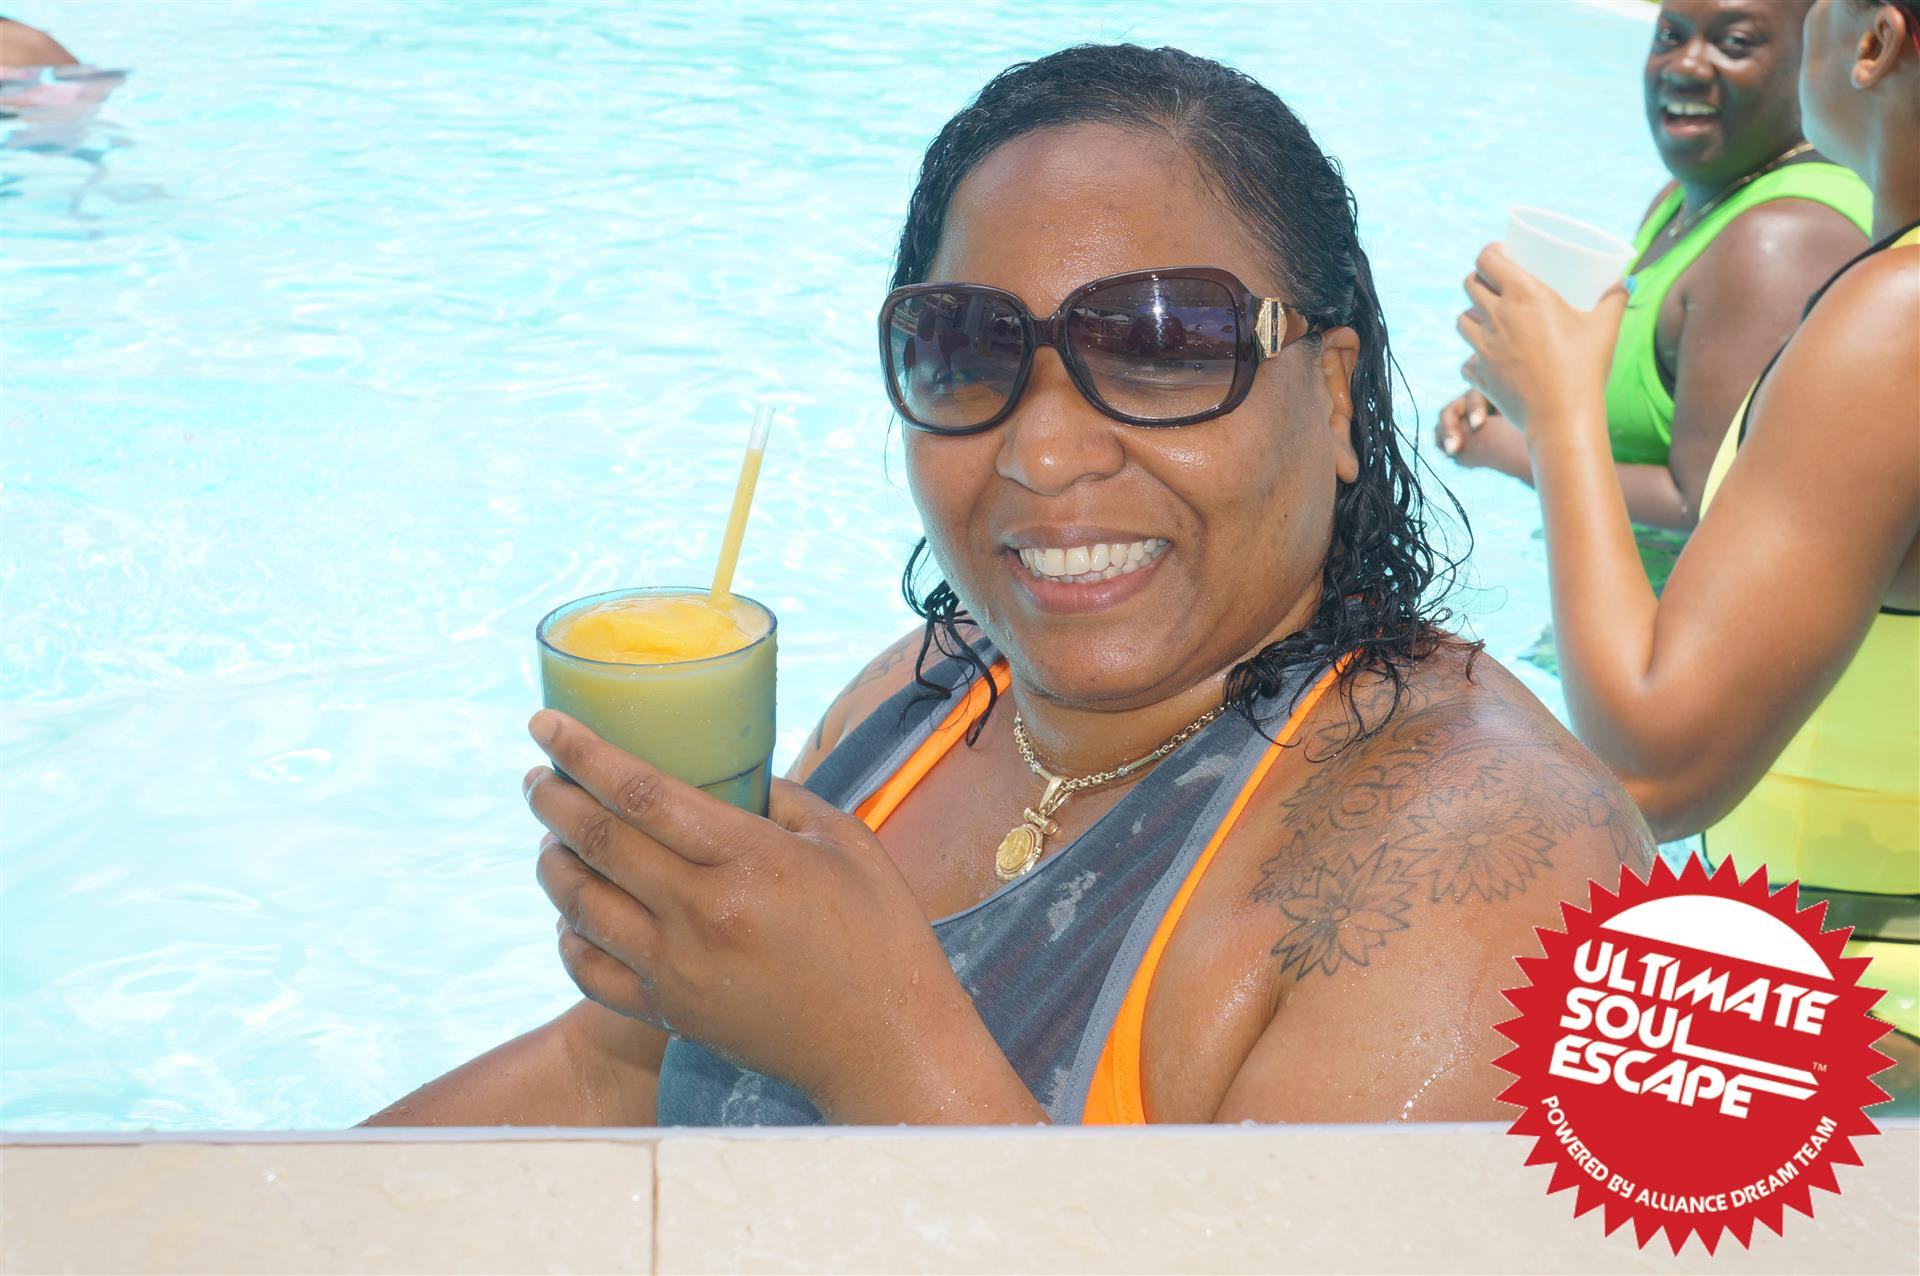 A women holding a slushie in a pool